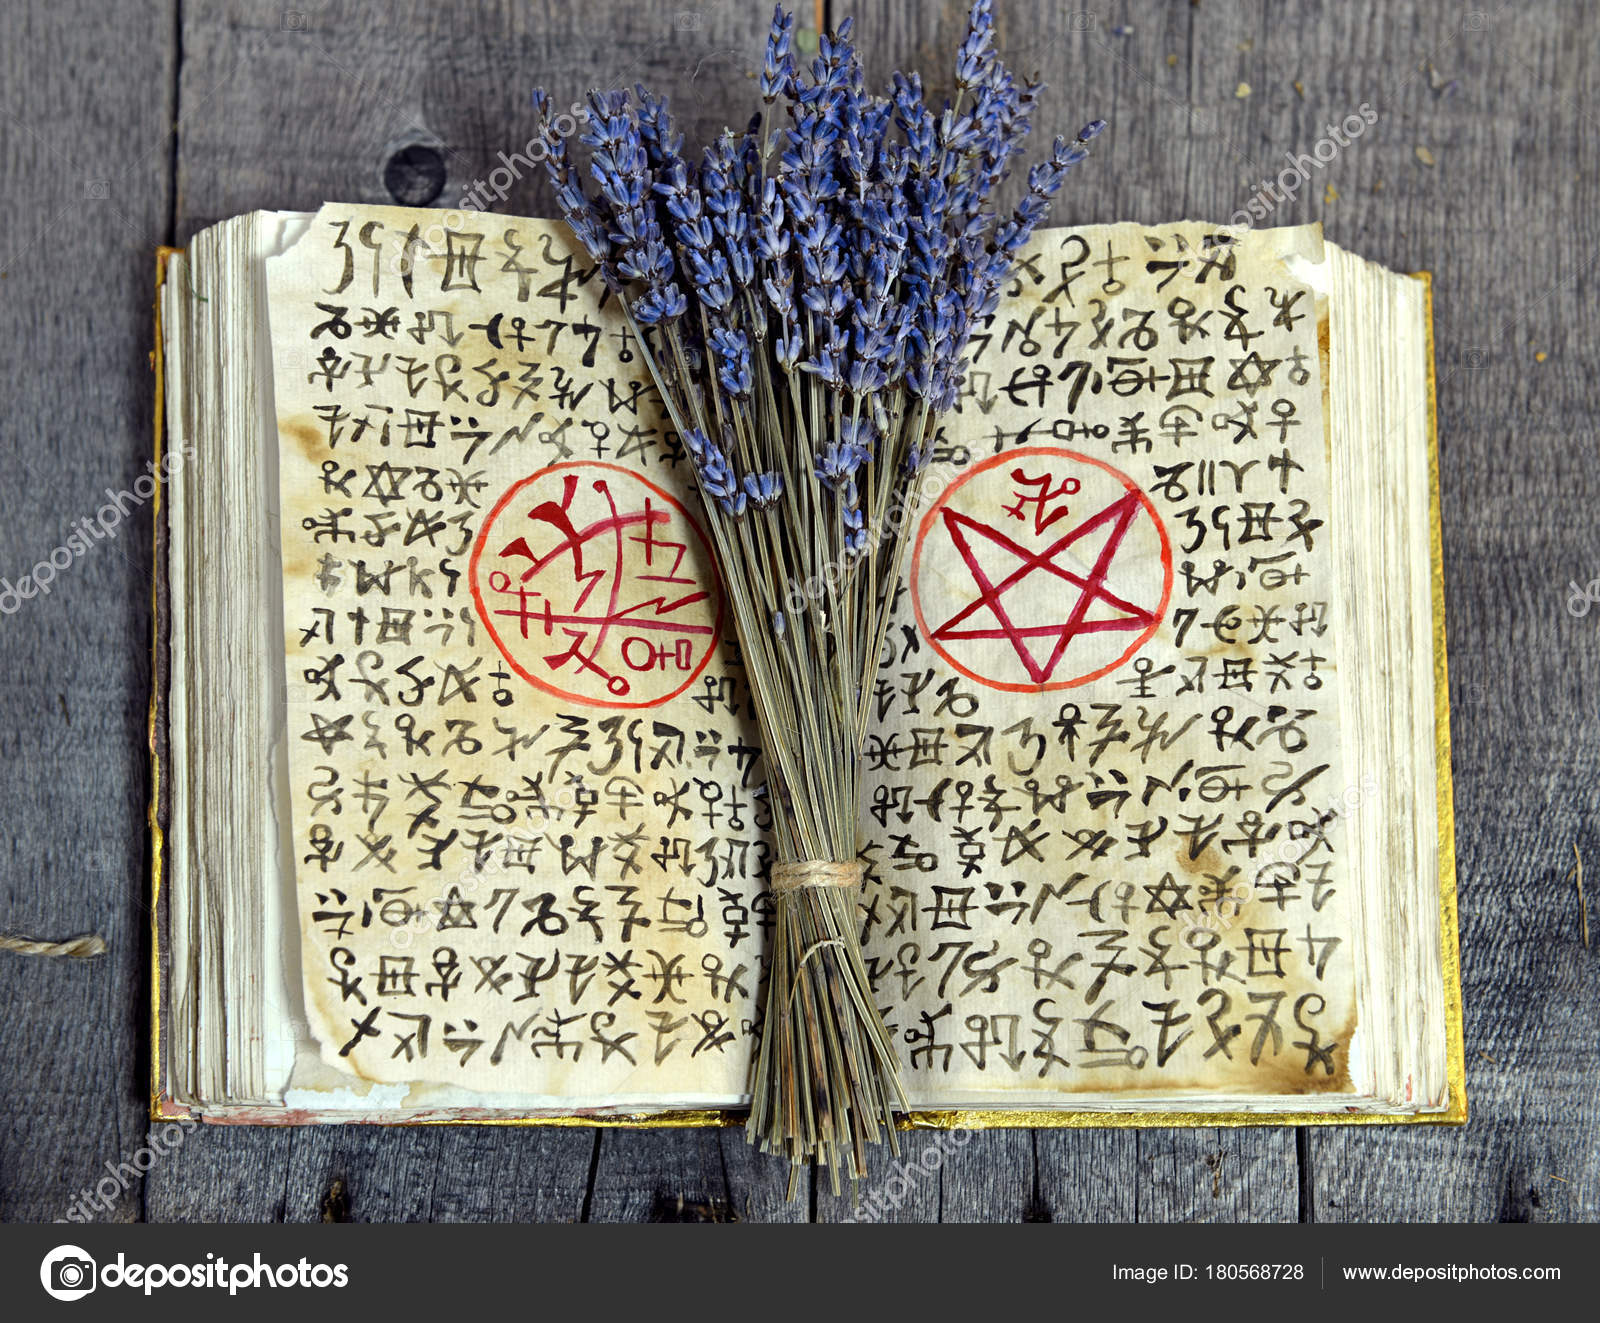 Old book black magic symbols lavender bunch witch table occult old book with black magic symbols and lavender bunch on witch table occult esoteric divination and wicca concept halloween vintage background biocorpaavc